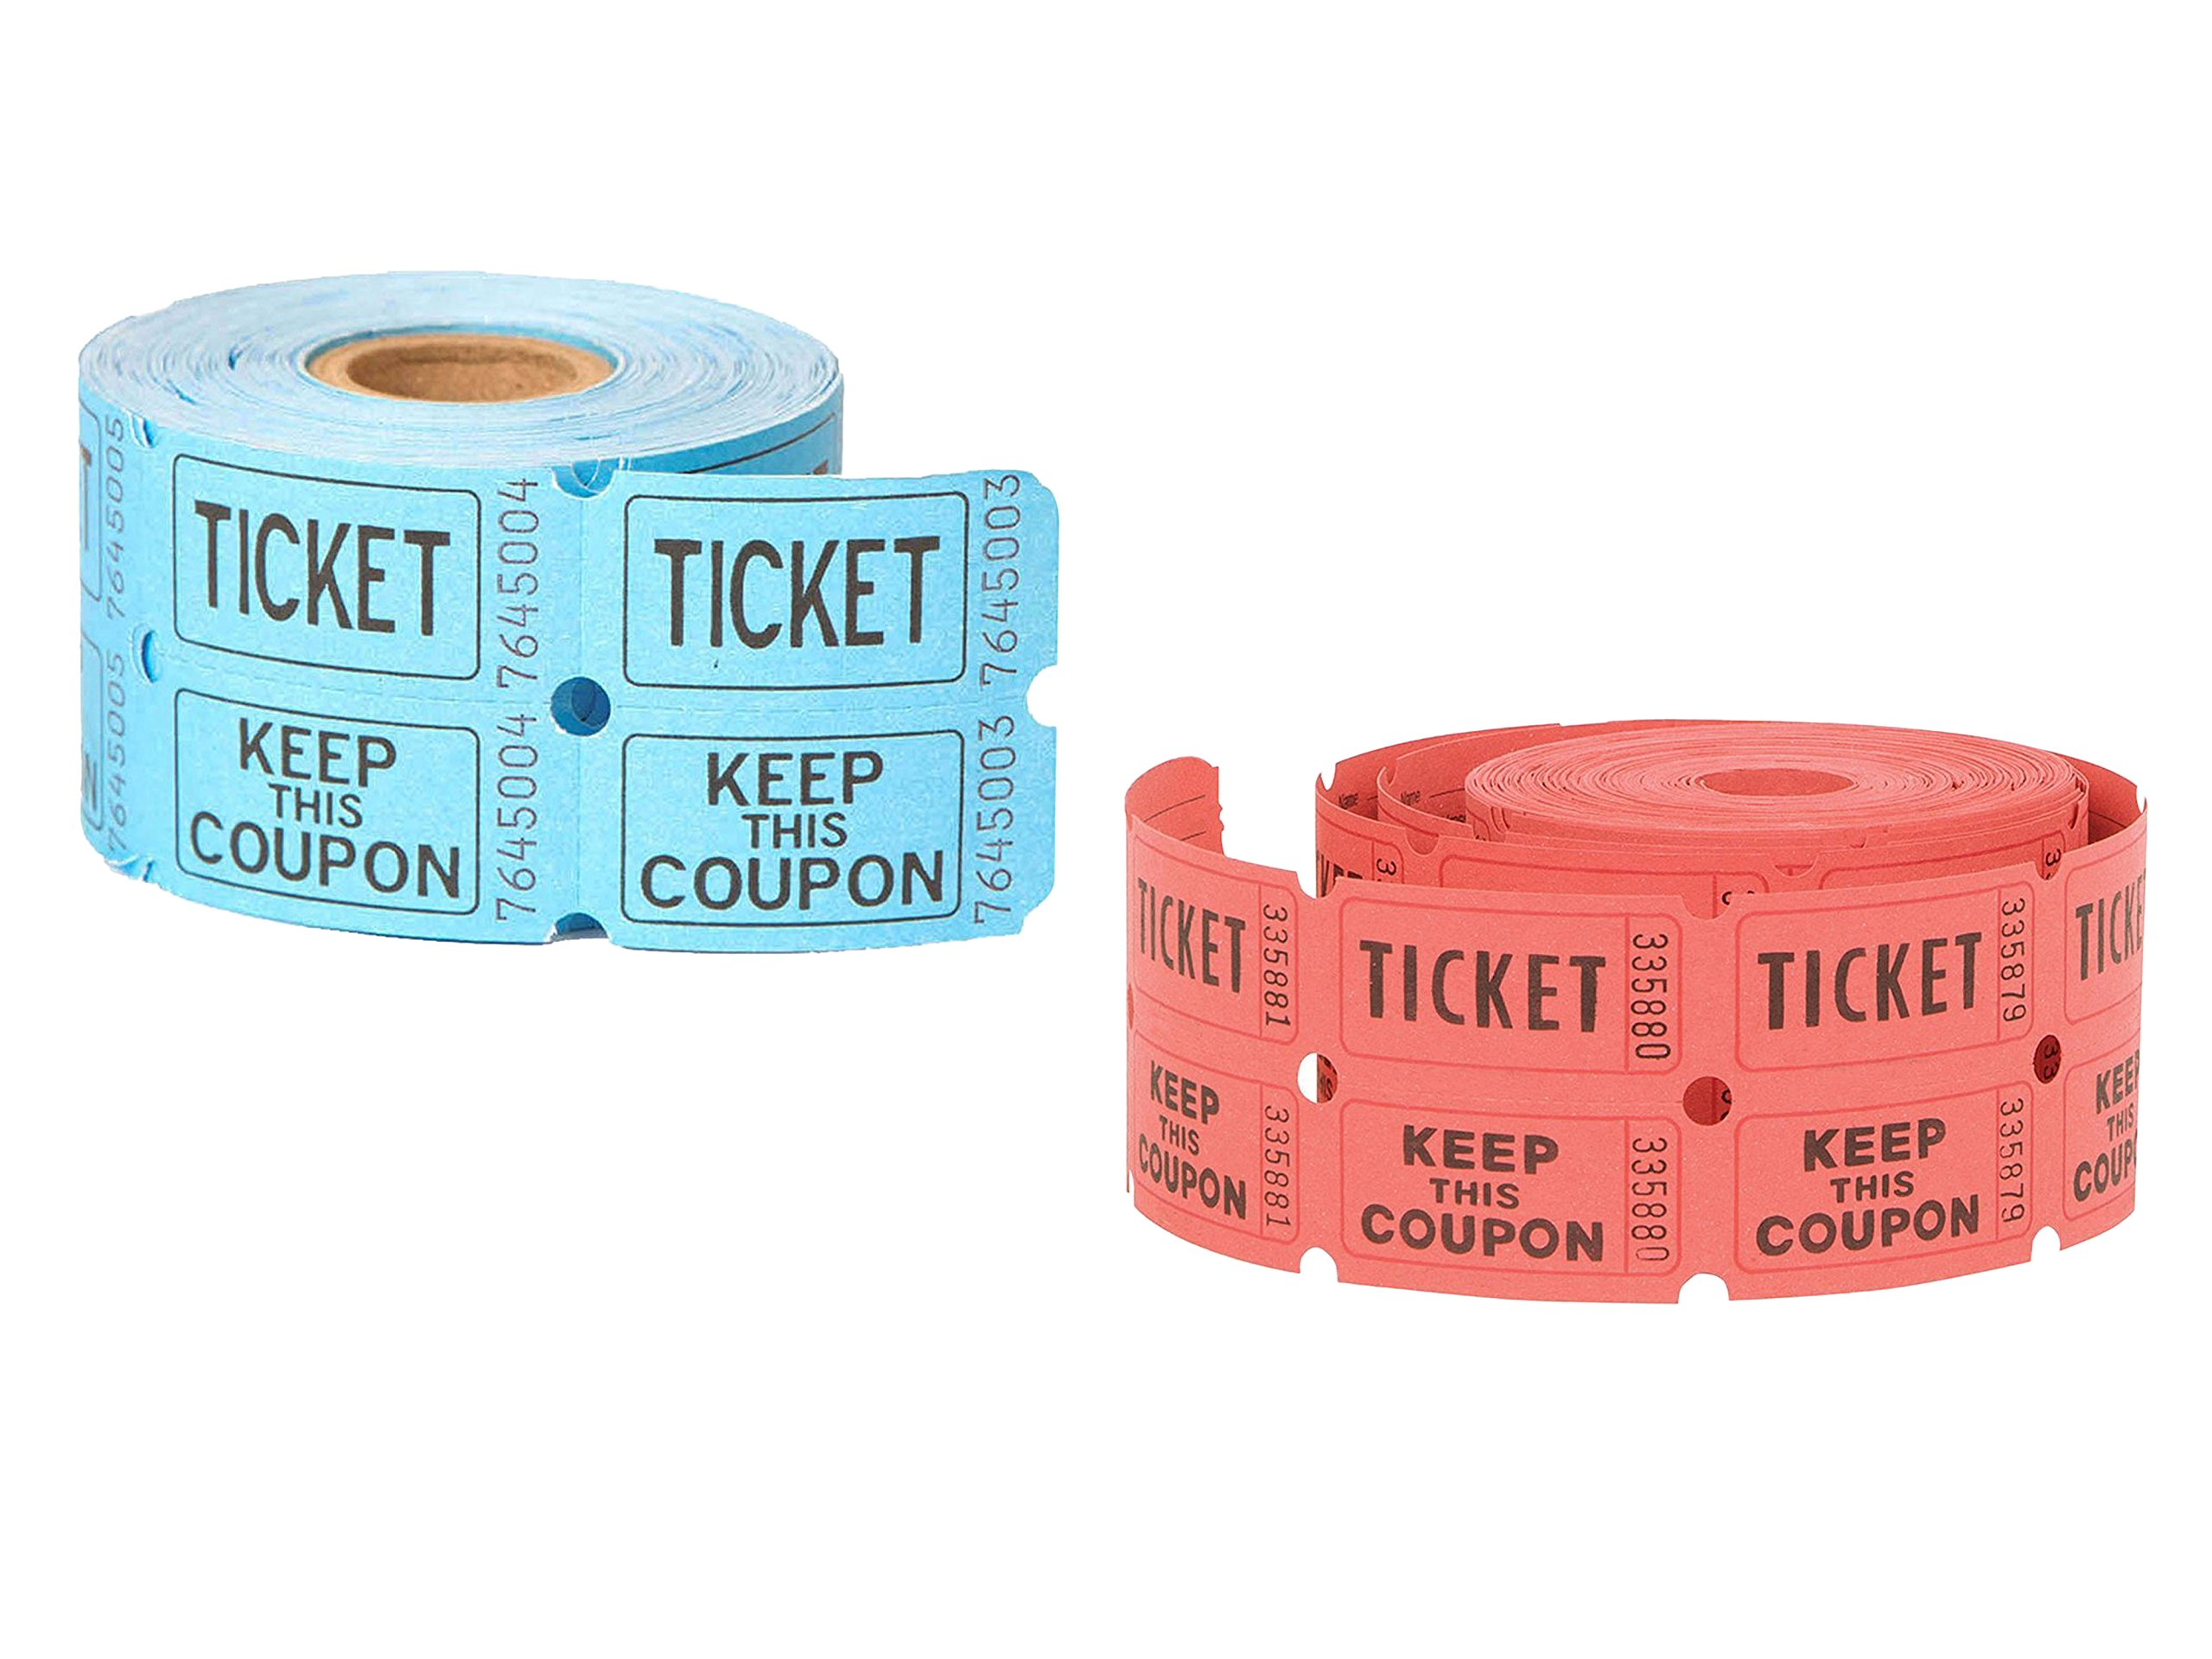 2 Roll of 500 Unique Industries Double Roll of Raffle Tickets (Color May Vary) Bundled by Maven Gifts